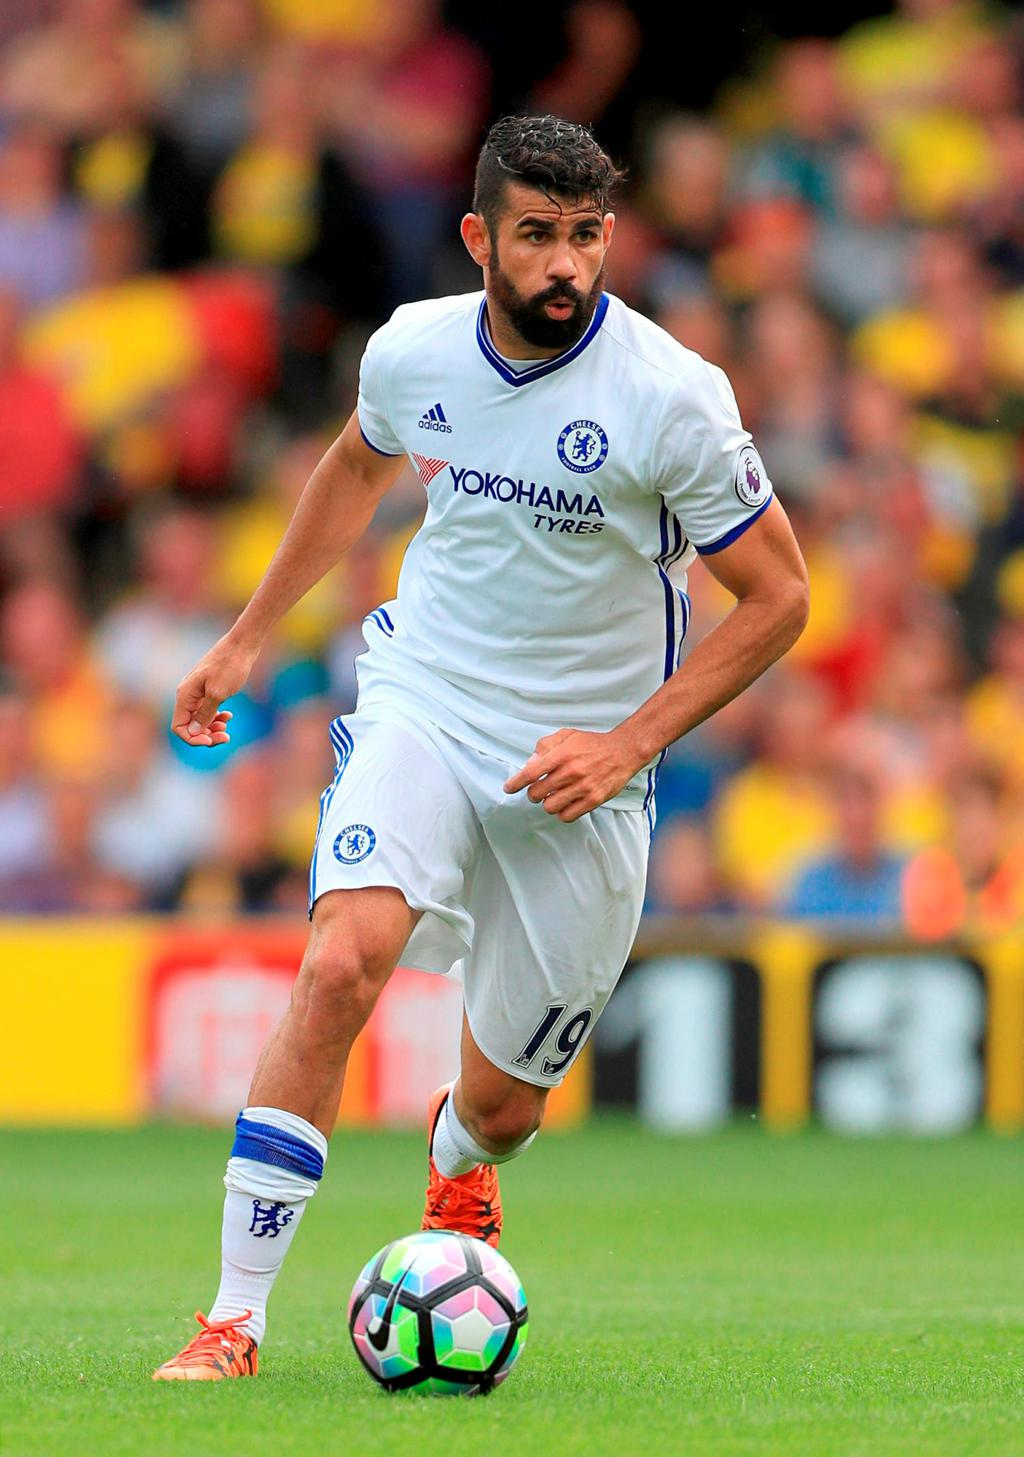 http   www.independent.ie sport soccer premier-league chelsea diego ... 61e5a07daaf40